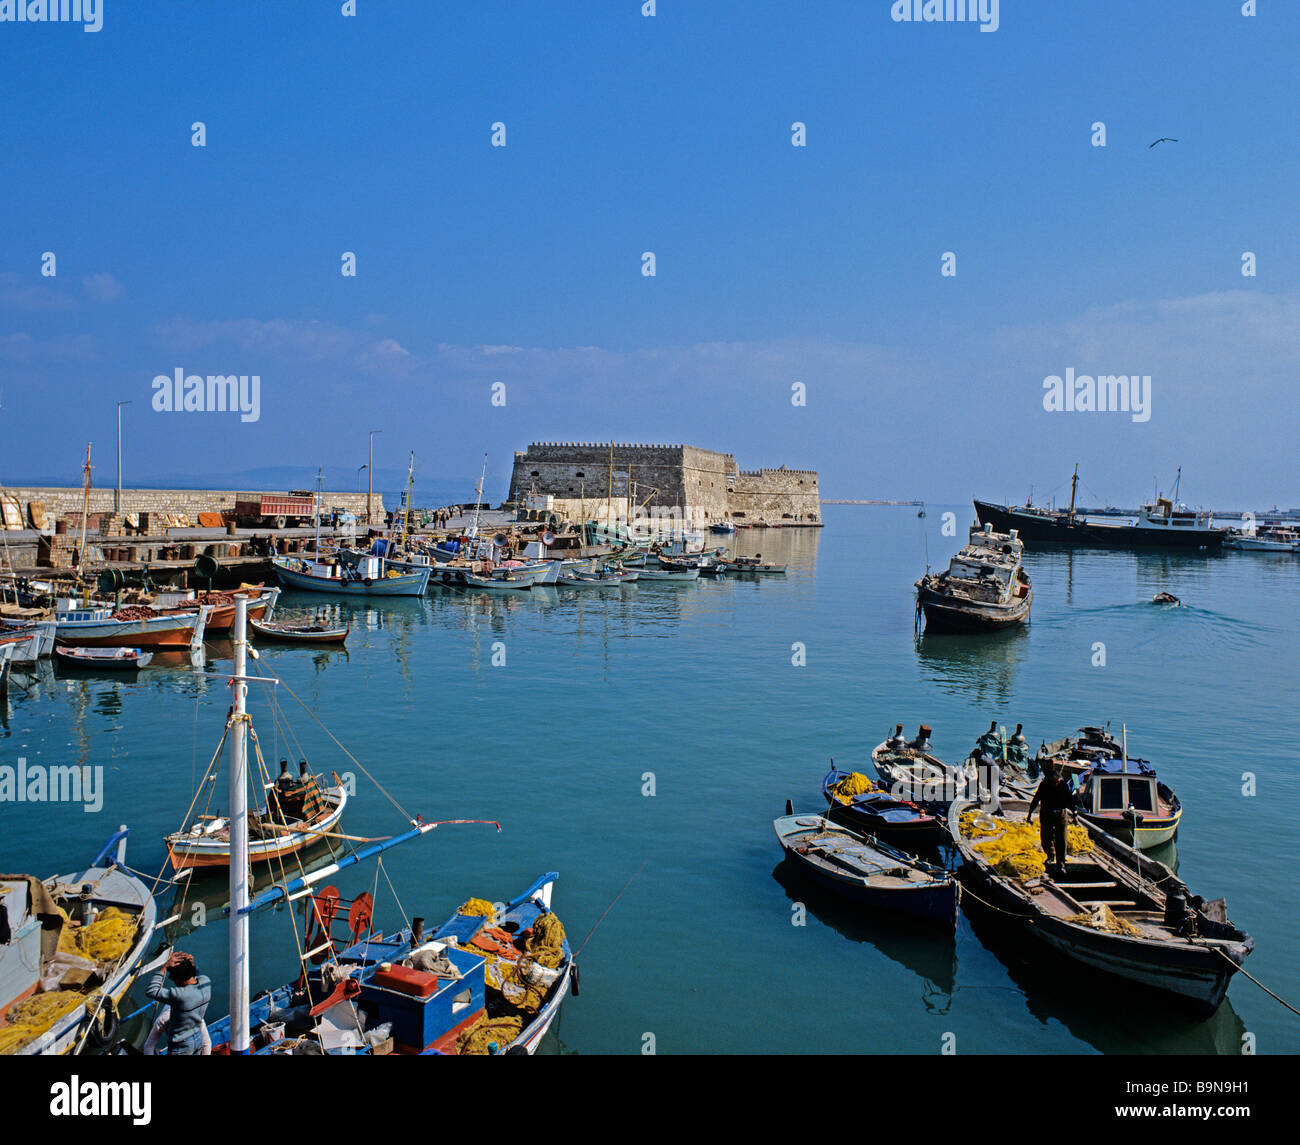 Fishing boats in the old fortified Venetian Harbour of Iraklion on the north coast of Crete - Stock Image